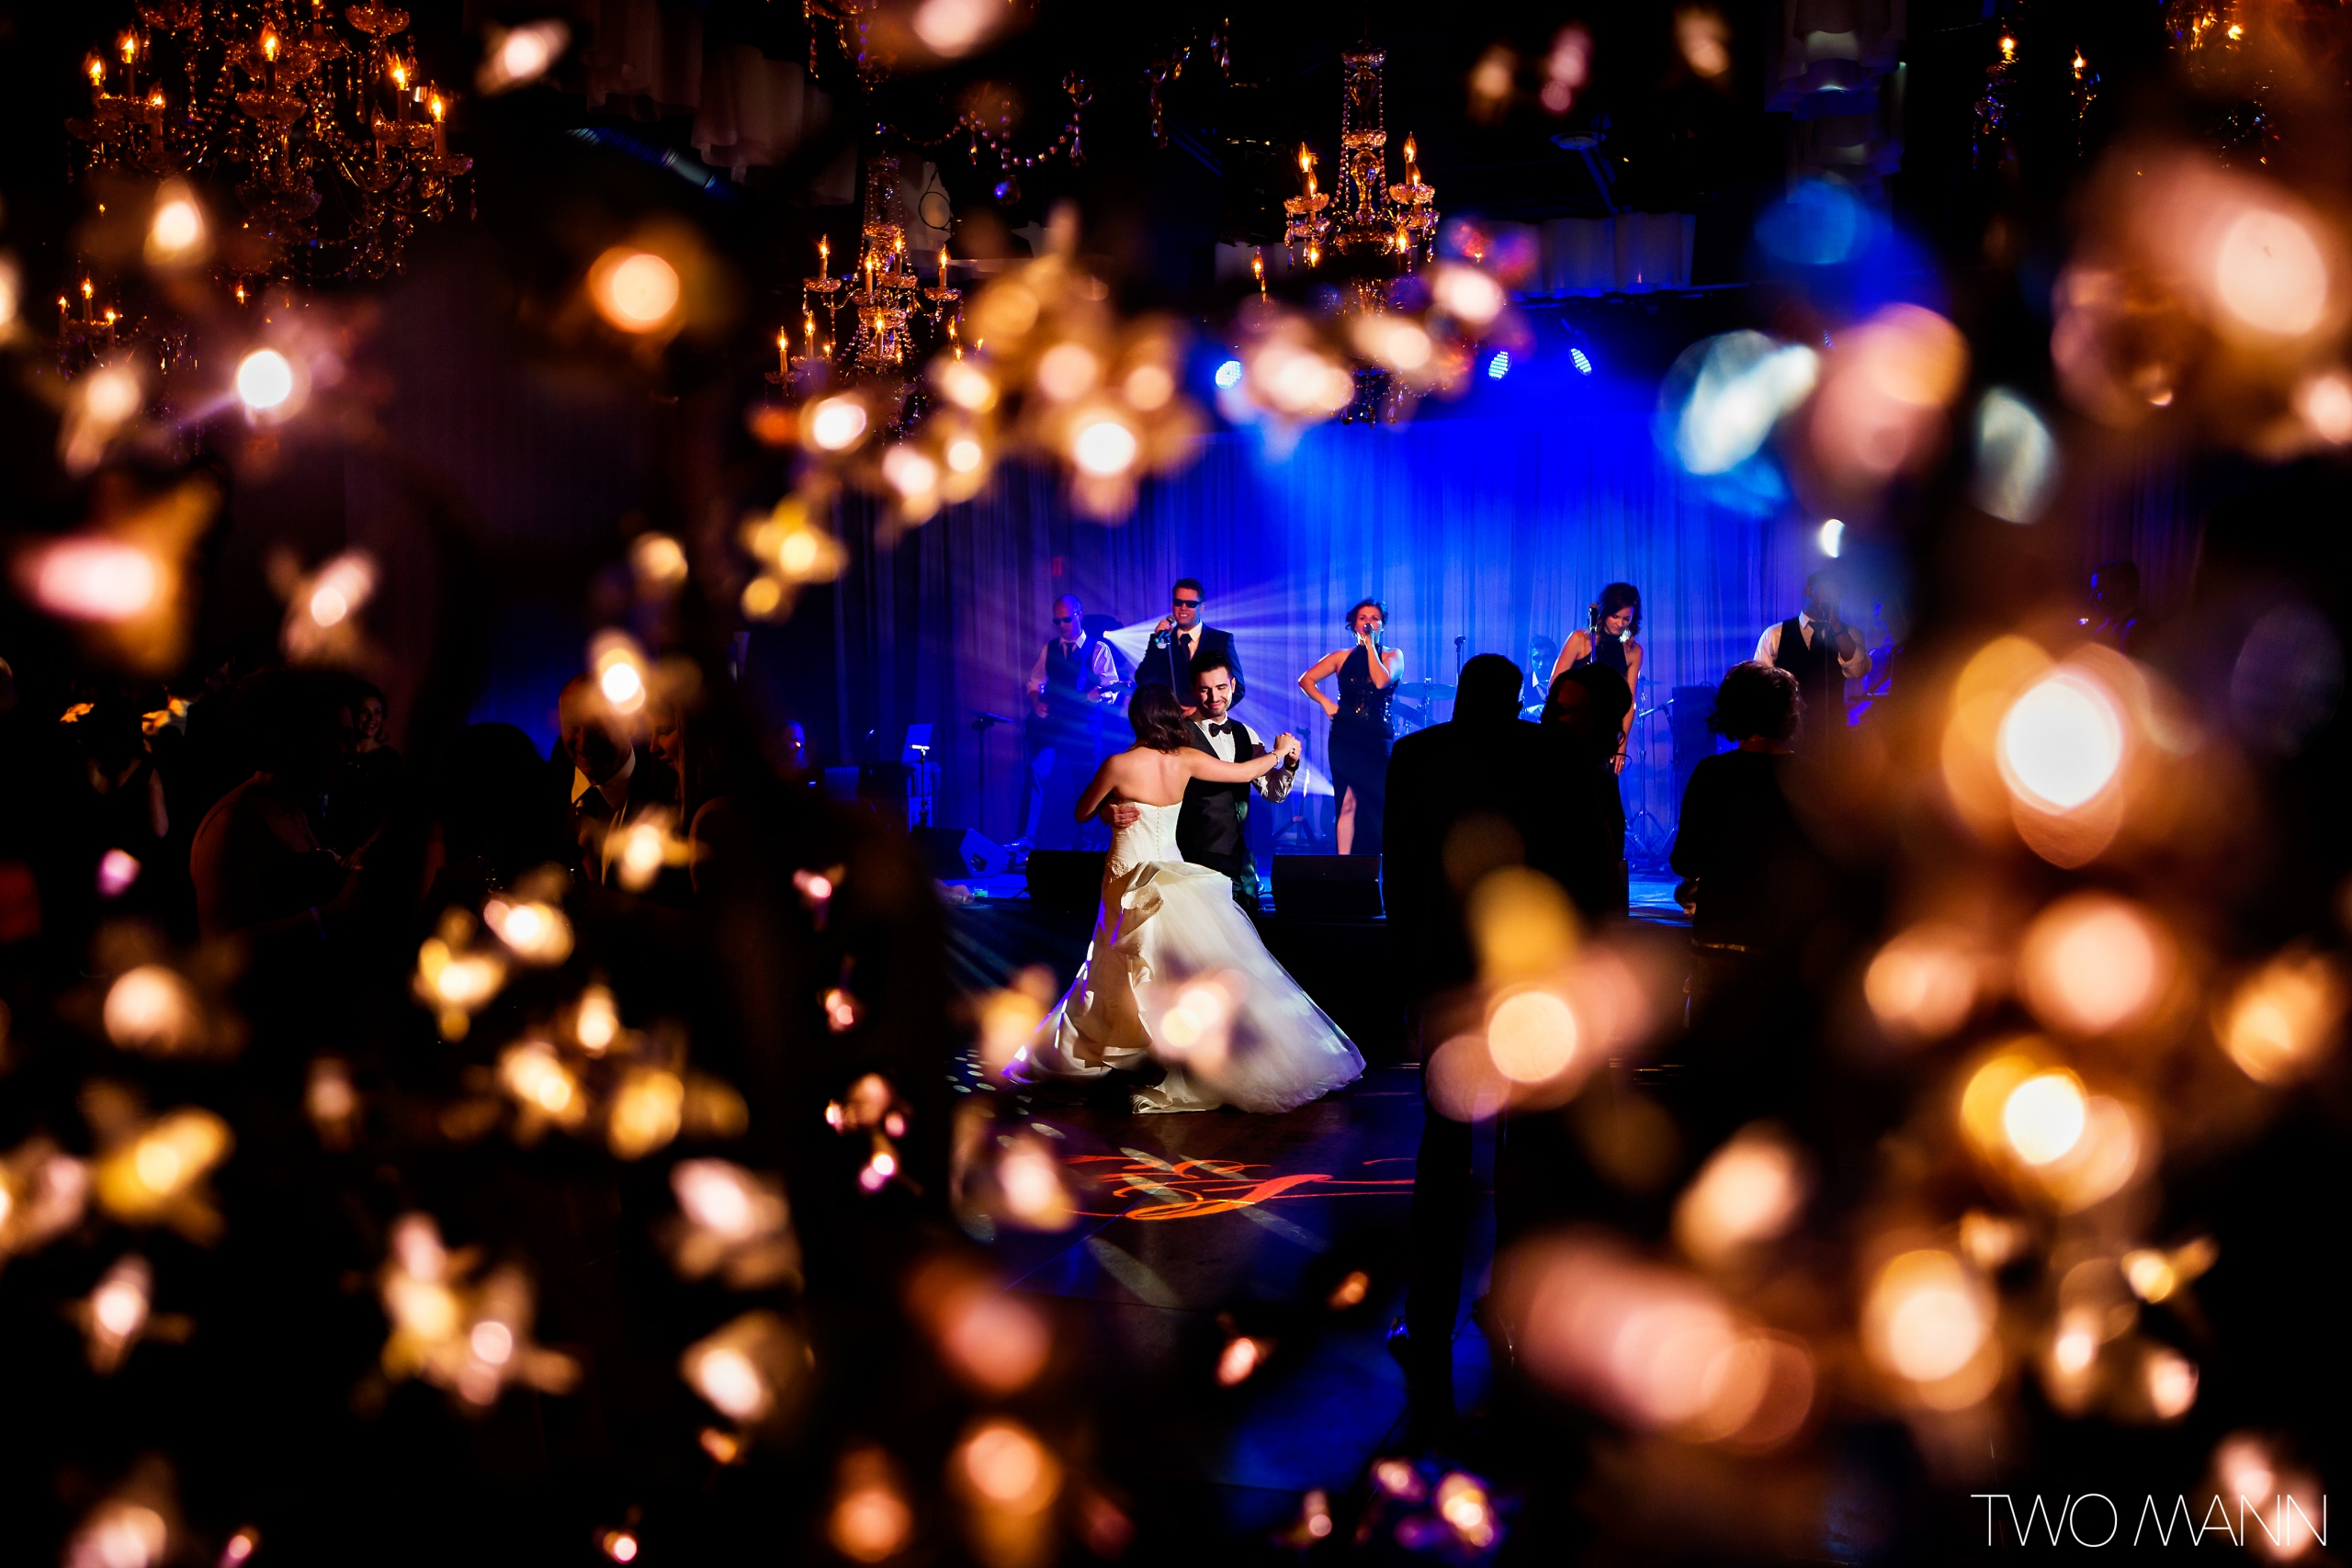 newlyweds' first dance in sparkle lights at the reception